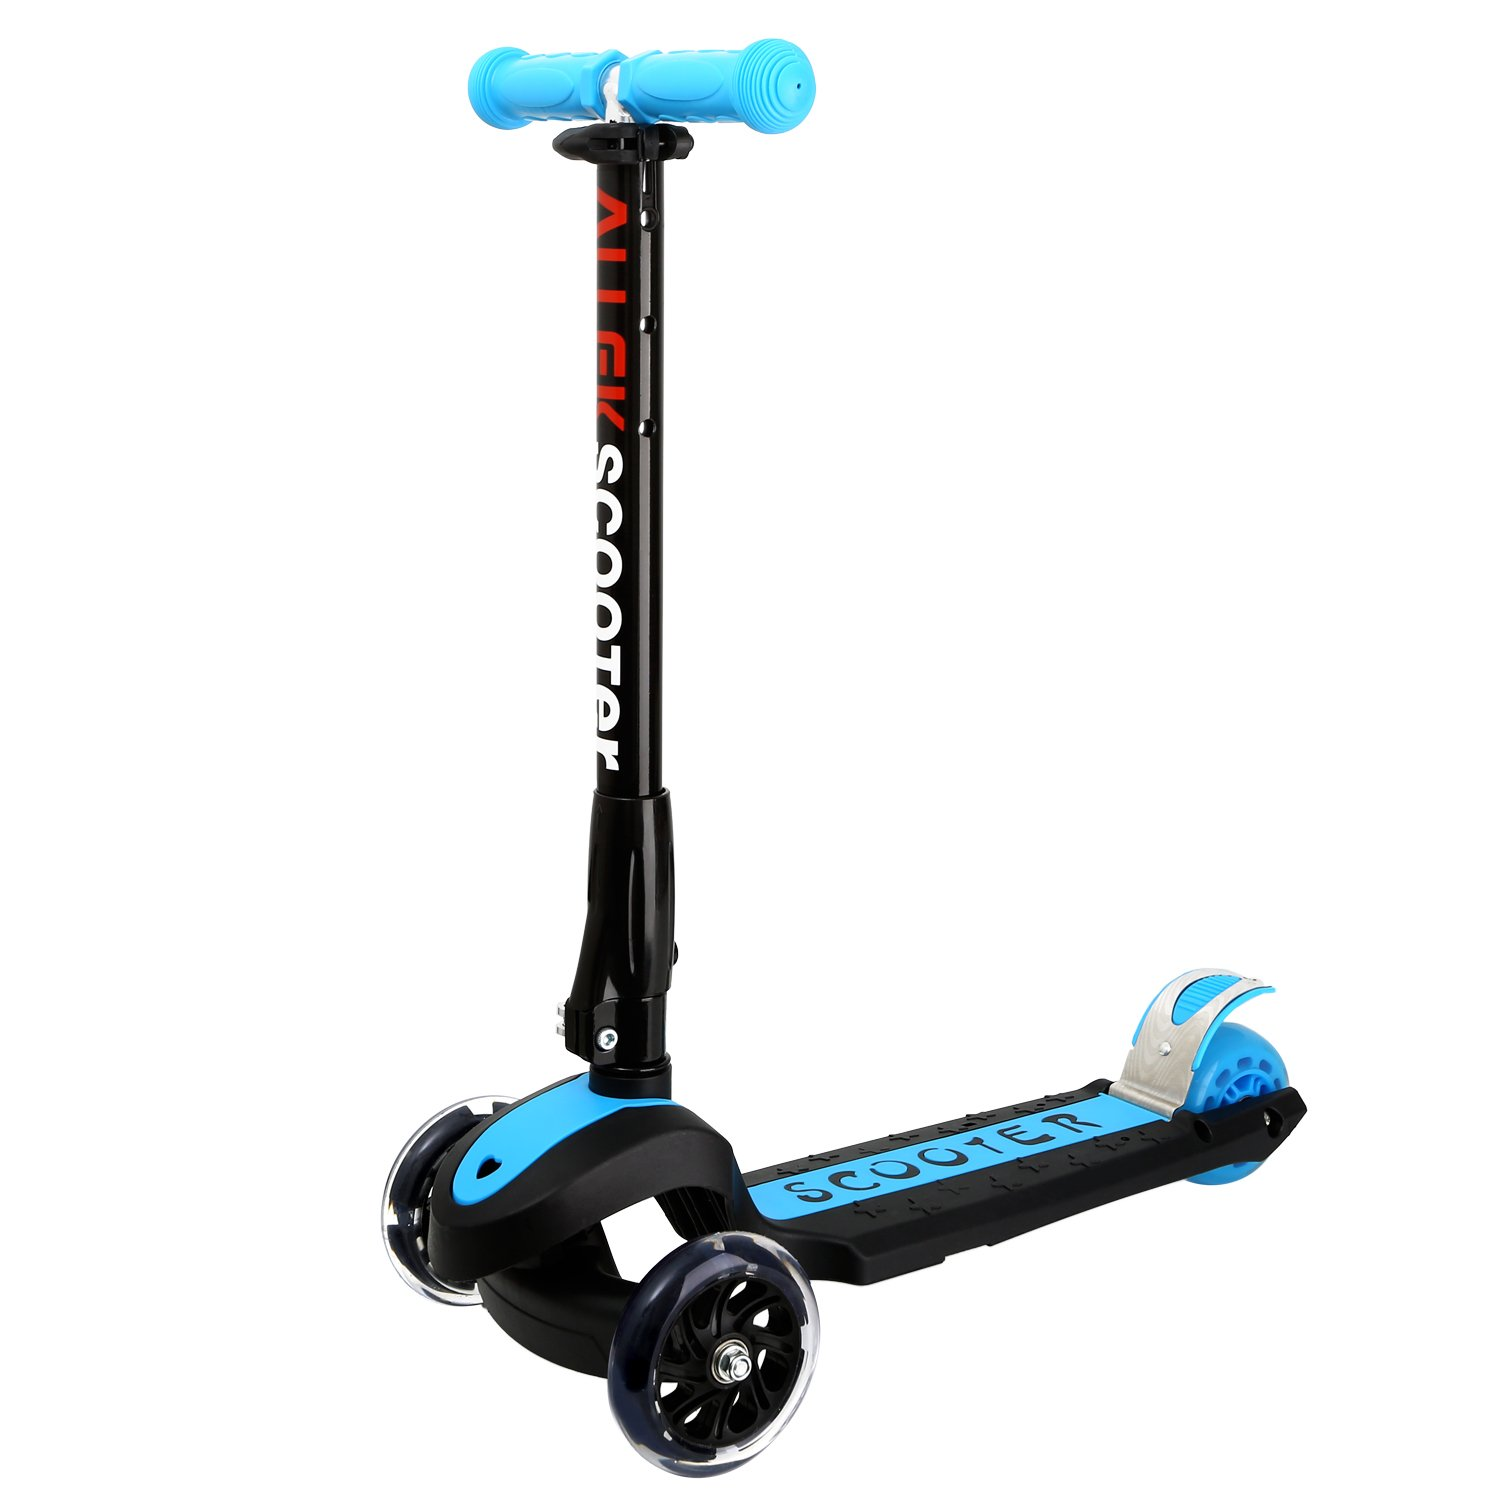 Allek Kick Scooter, 3 Wheel Adjustable Height PU Flashing 3 Wheels Scooter Kids Patented Folding System Best Gifts Children from 3 to 17 Year-Old